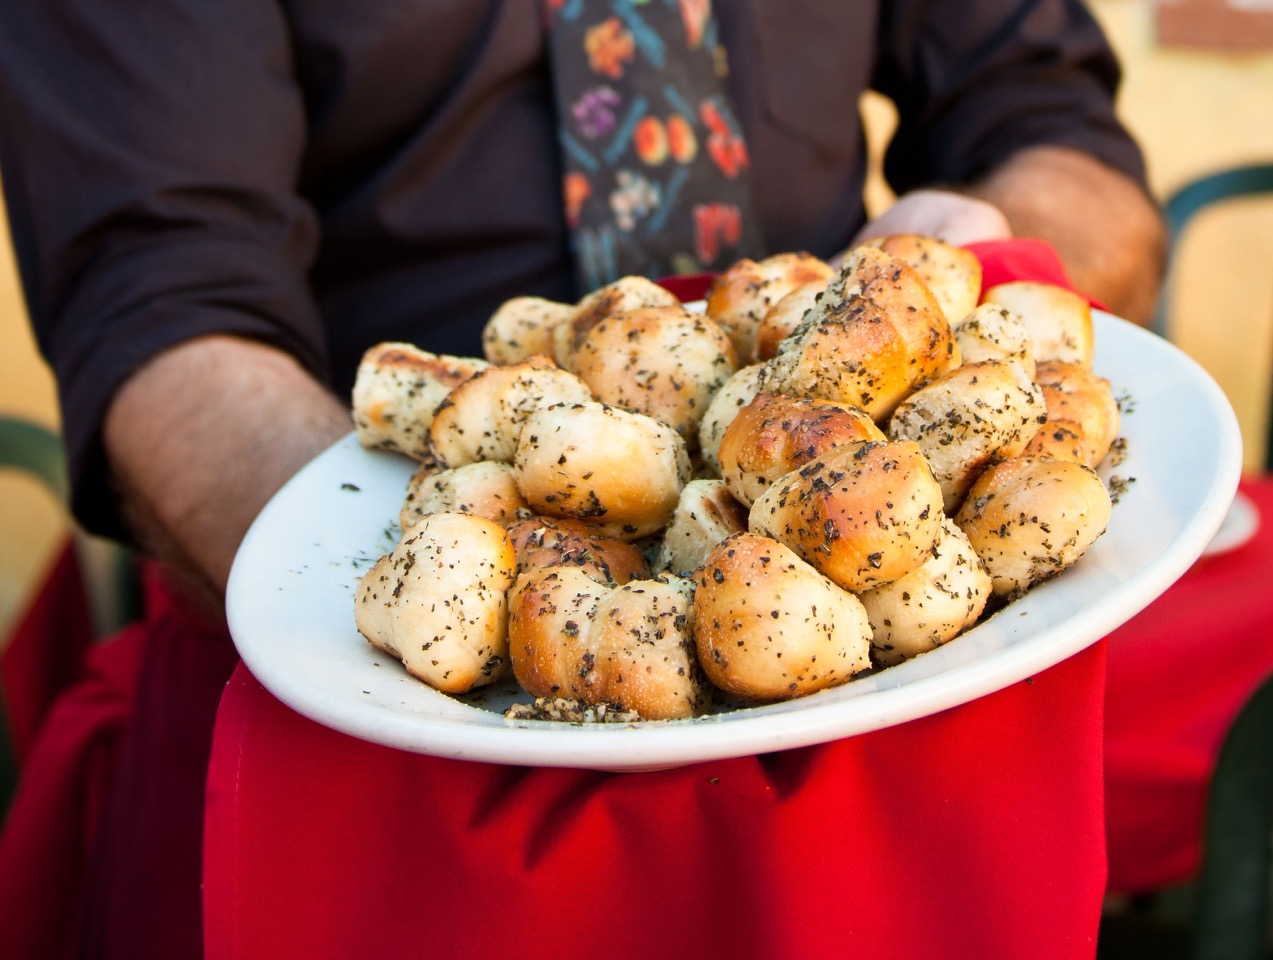 Garlic Knot Picture